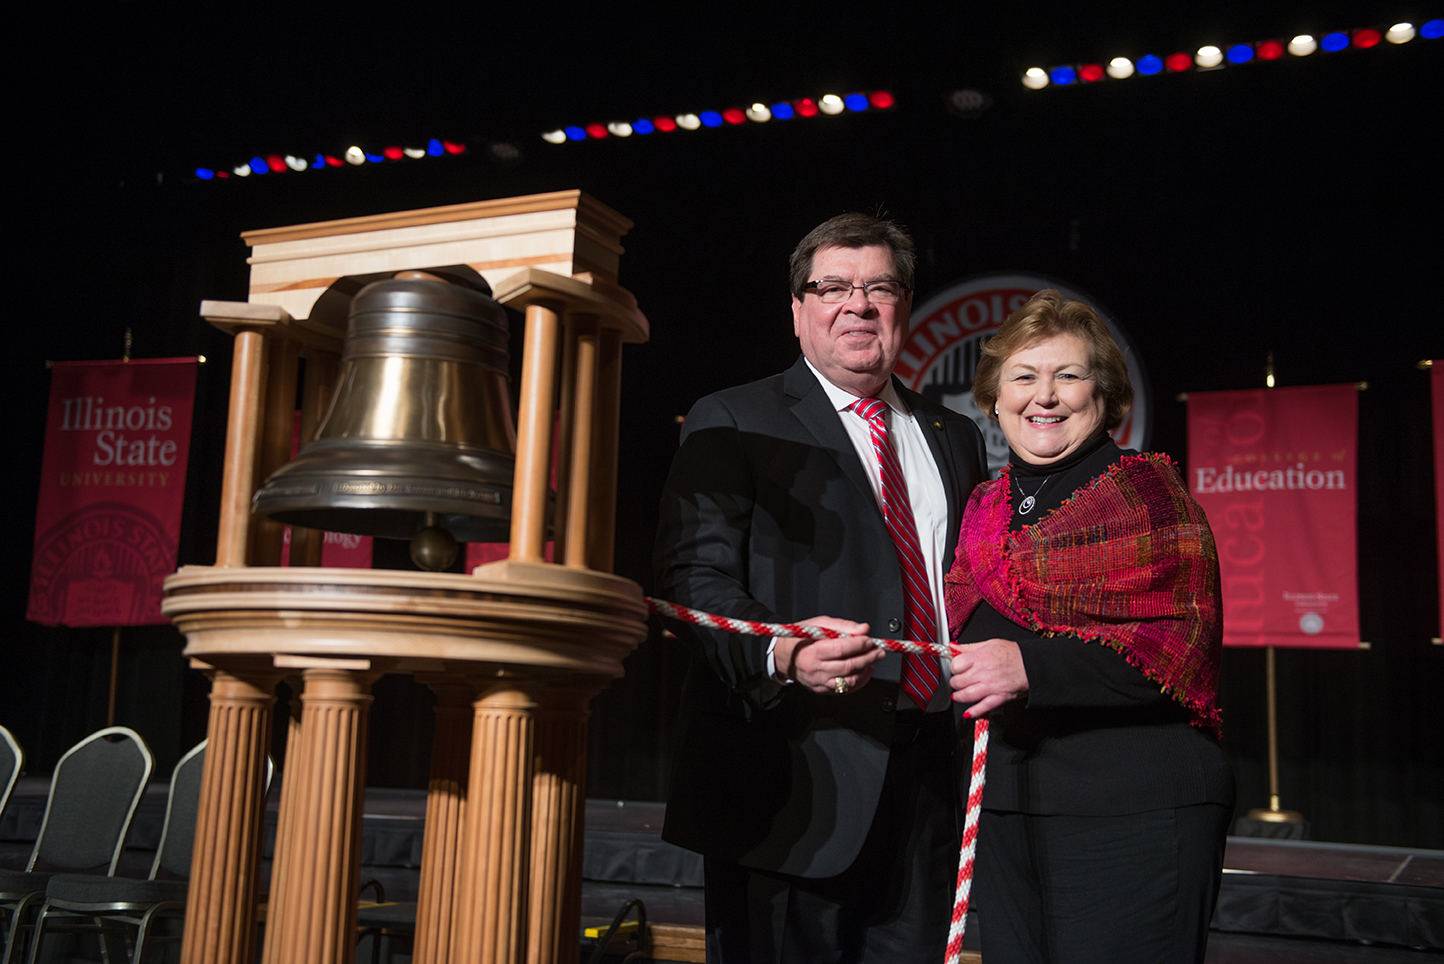 President Larry and First Lady Marlene Dietz prepare to ring the replica of the Founders Bell.